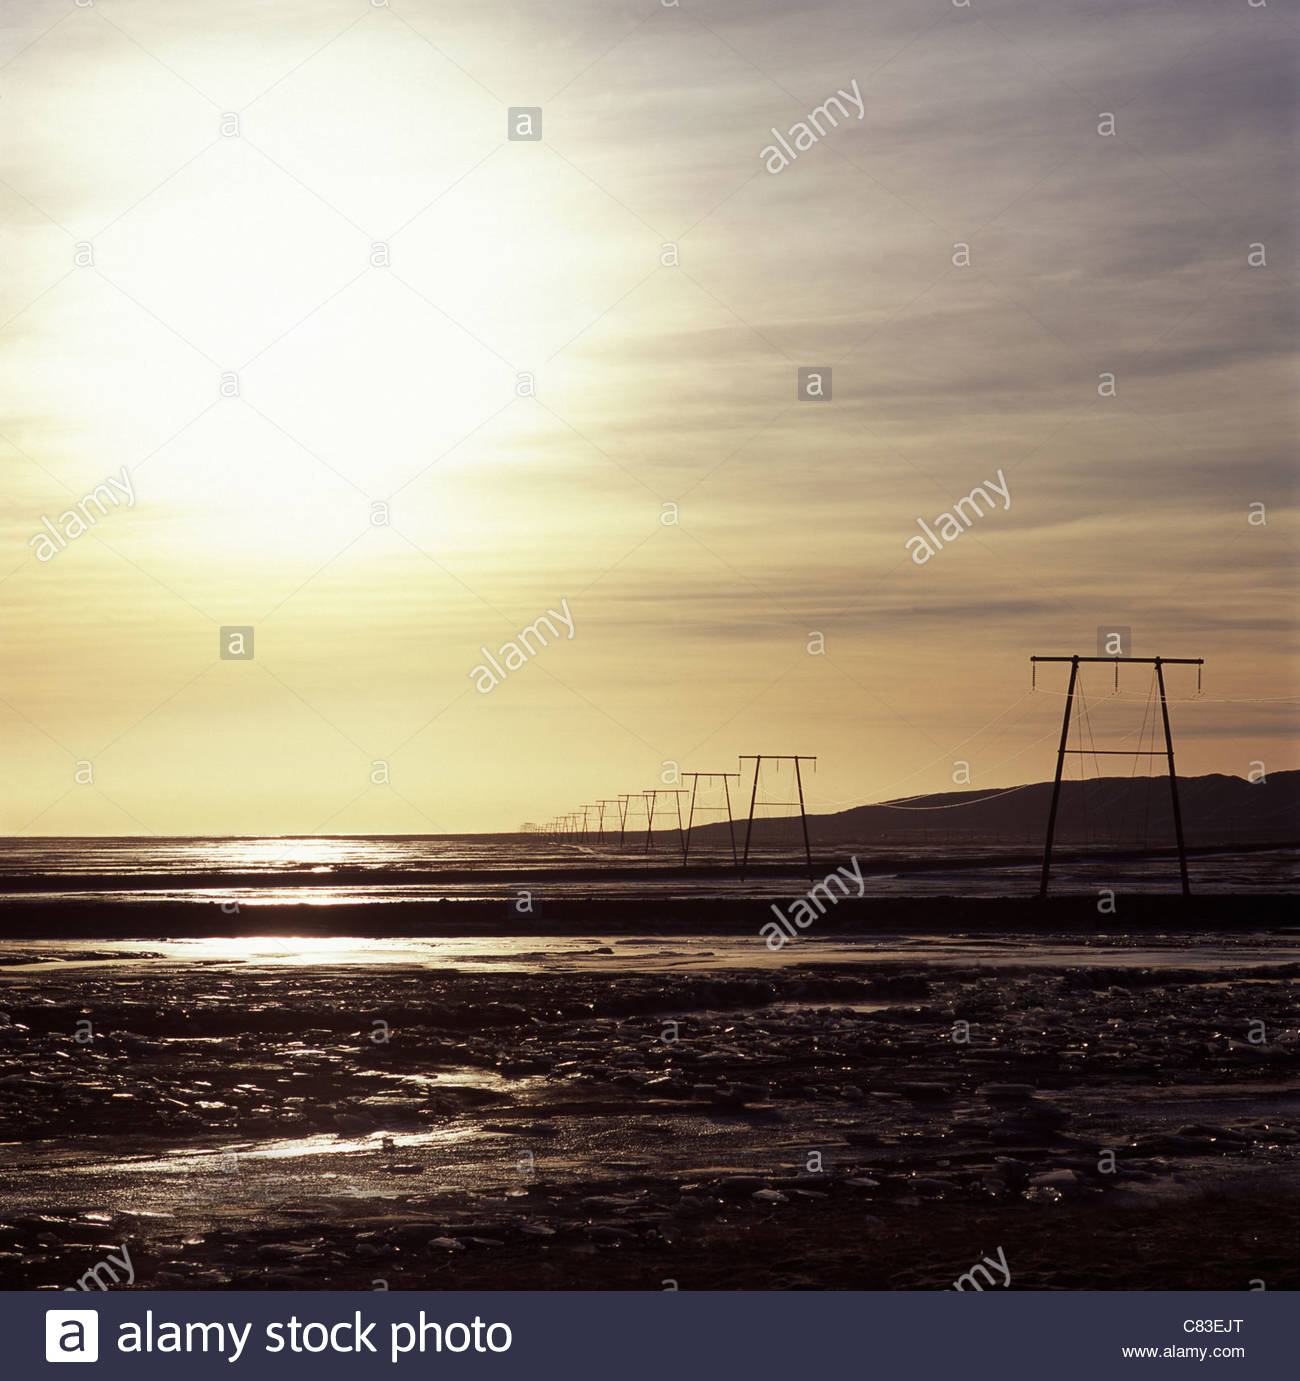 Power lines in rural landscape - Stock Image